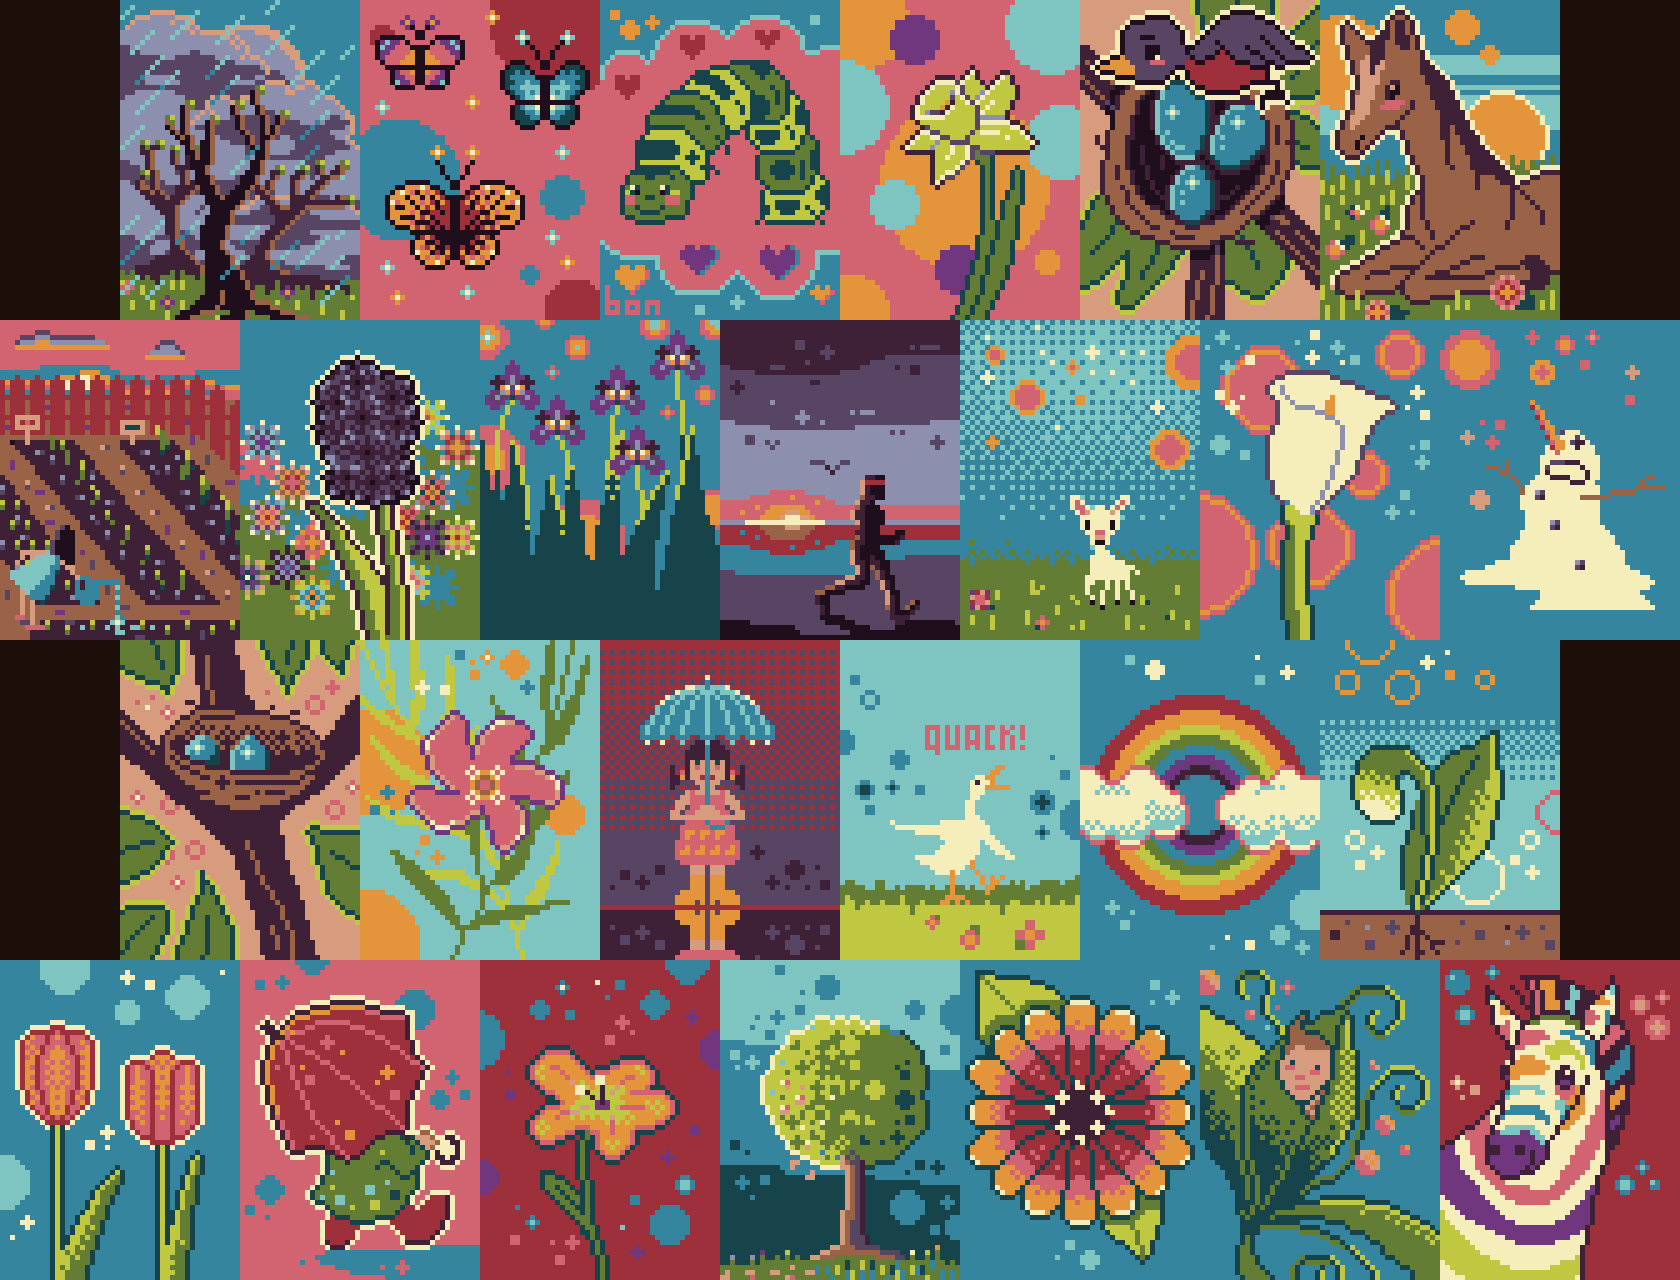 abcdailies Spring Pixel Art Collage by Bonnie K Thompson